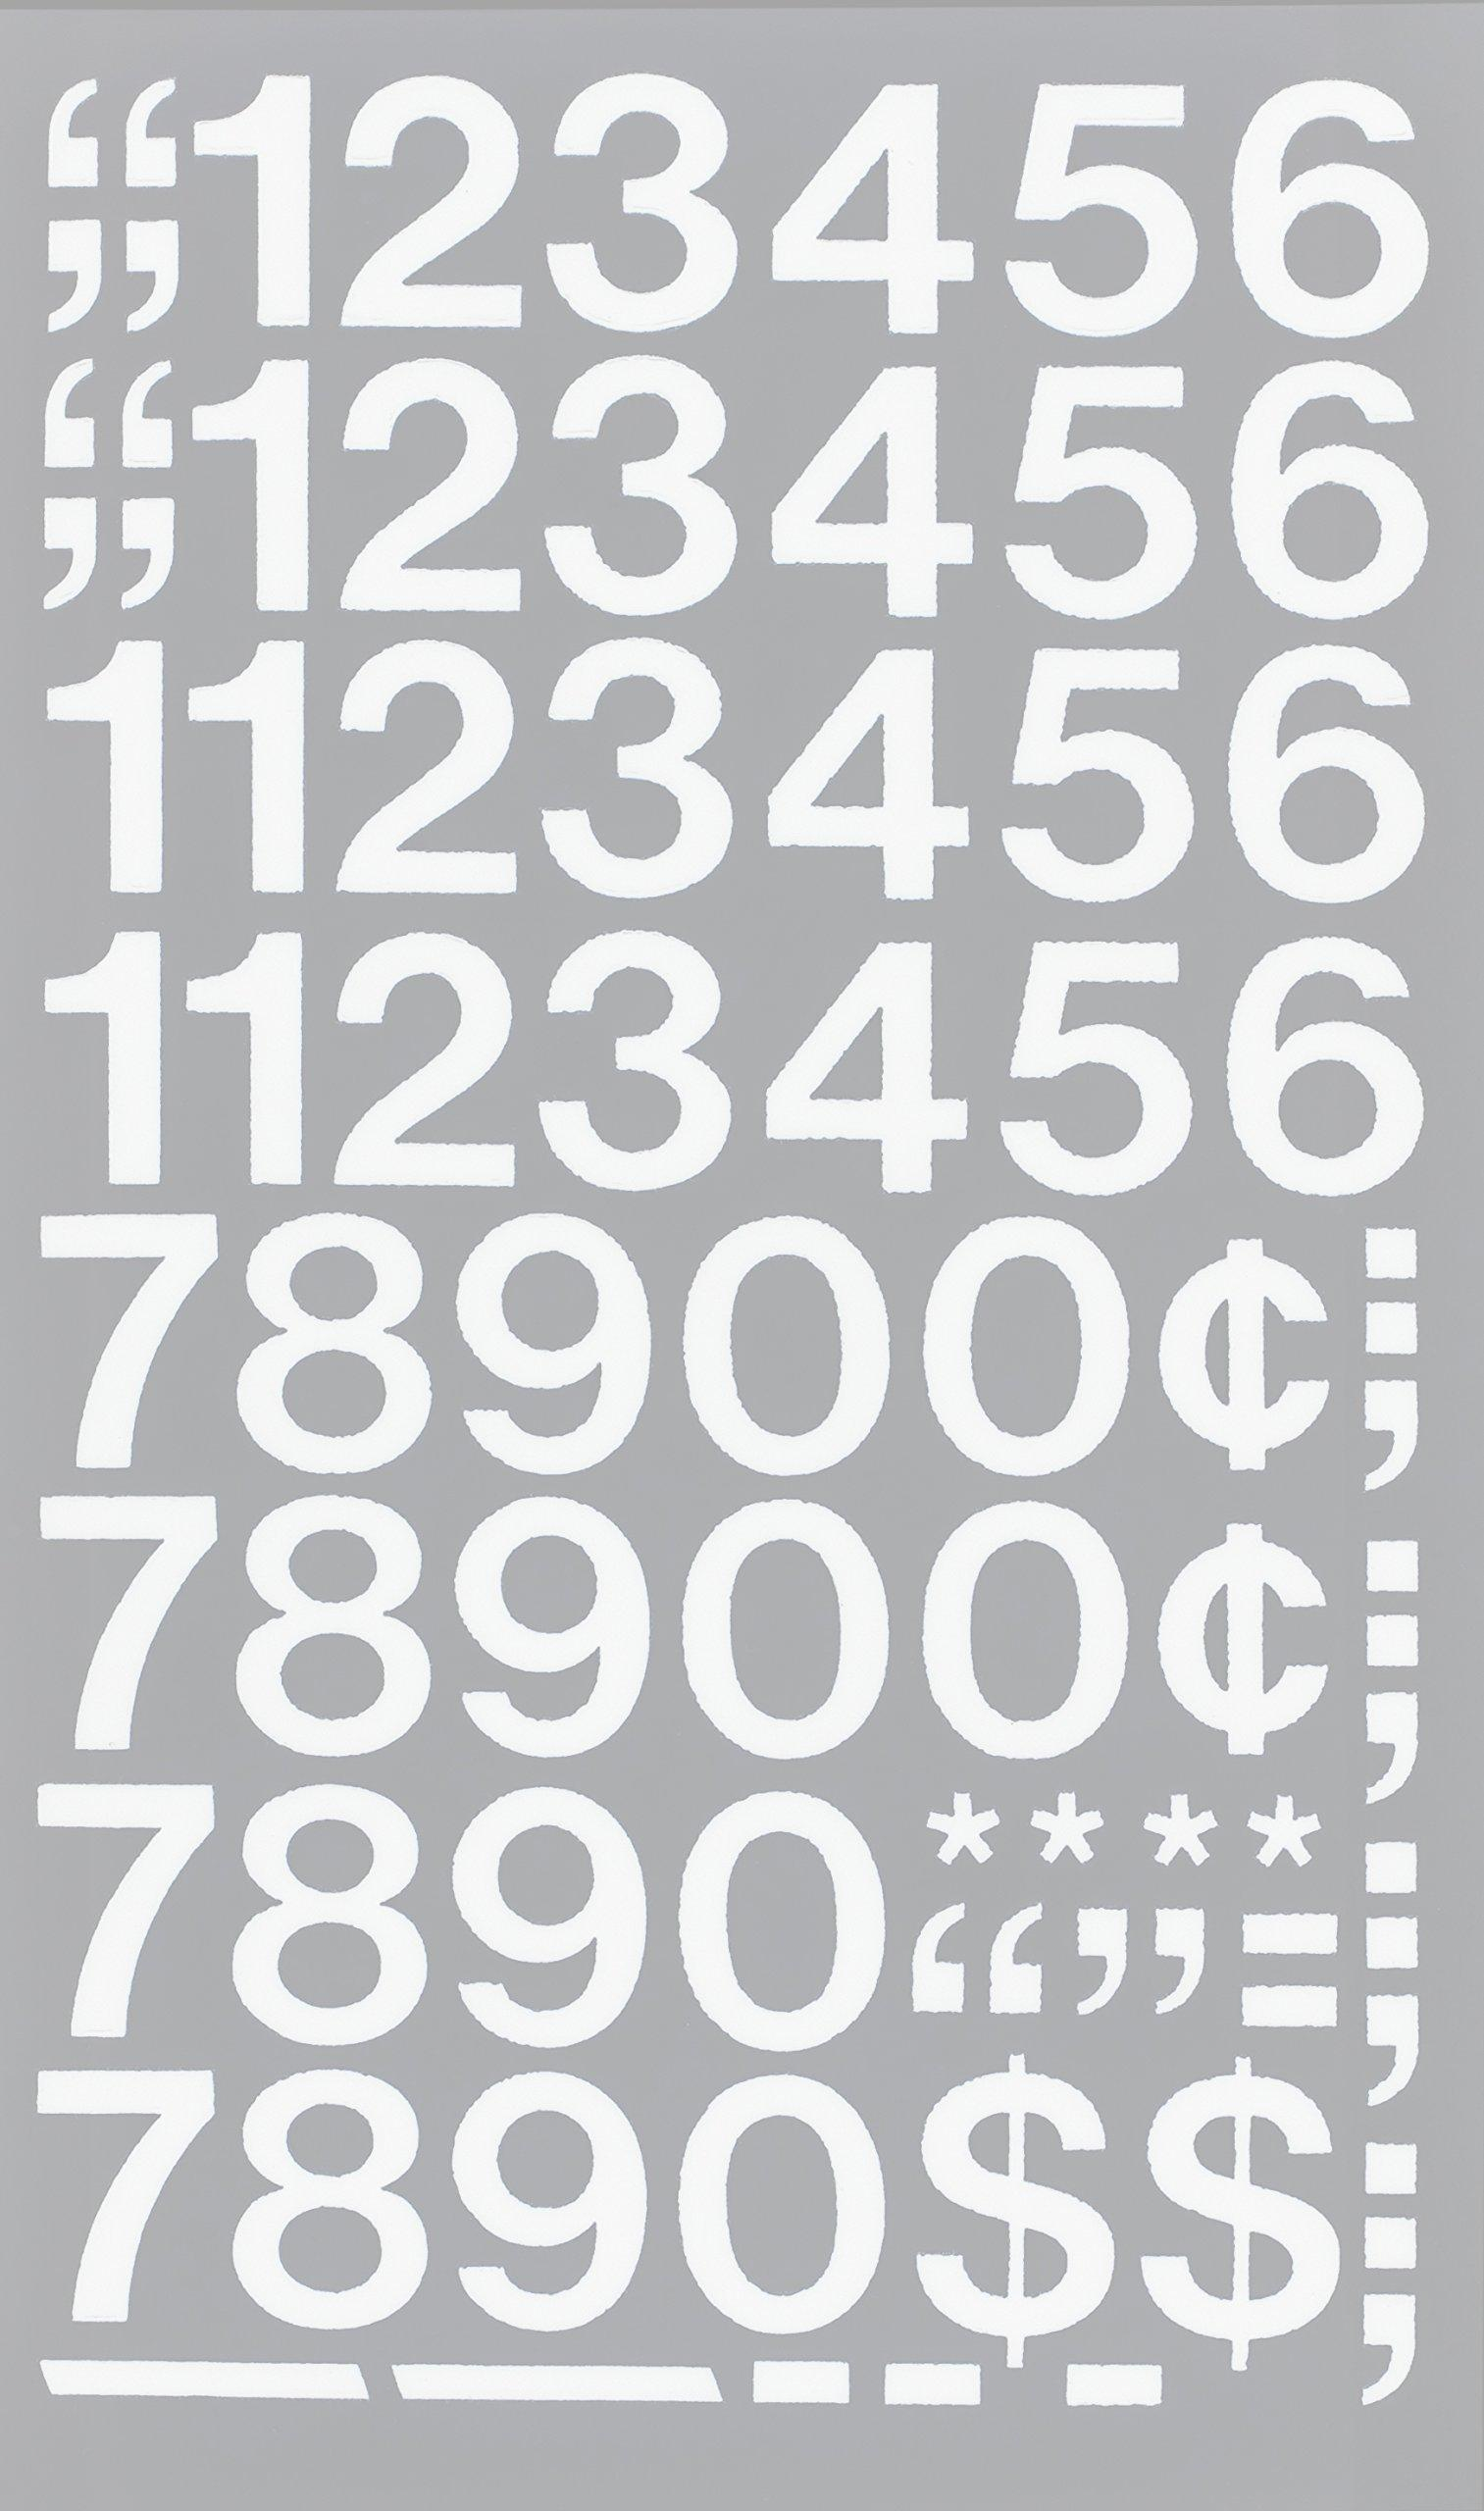 44 per Pack 1 Inch High White 01136 Chartpak Self-Adhesive Vinyl Numbers